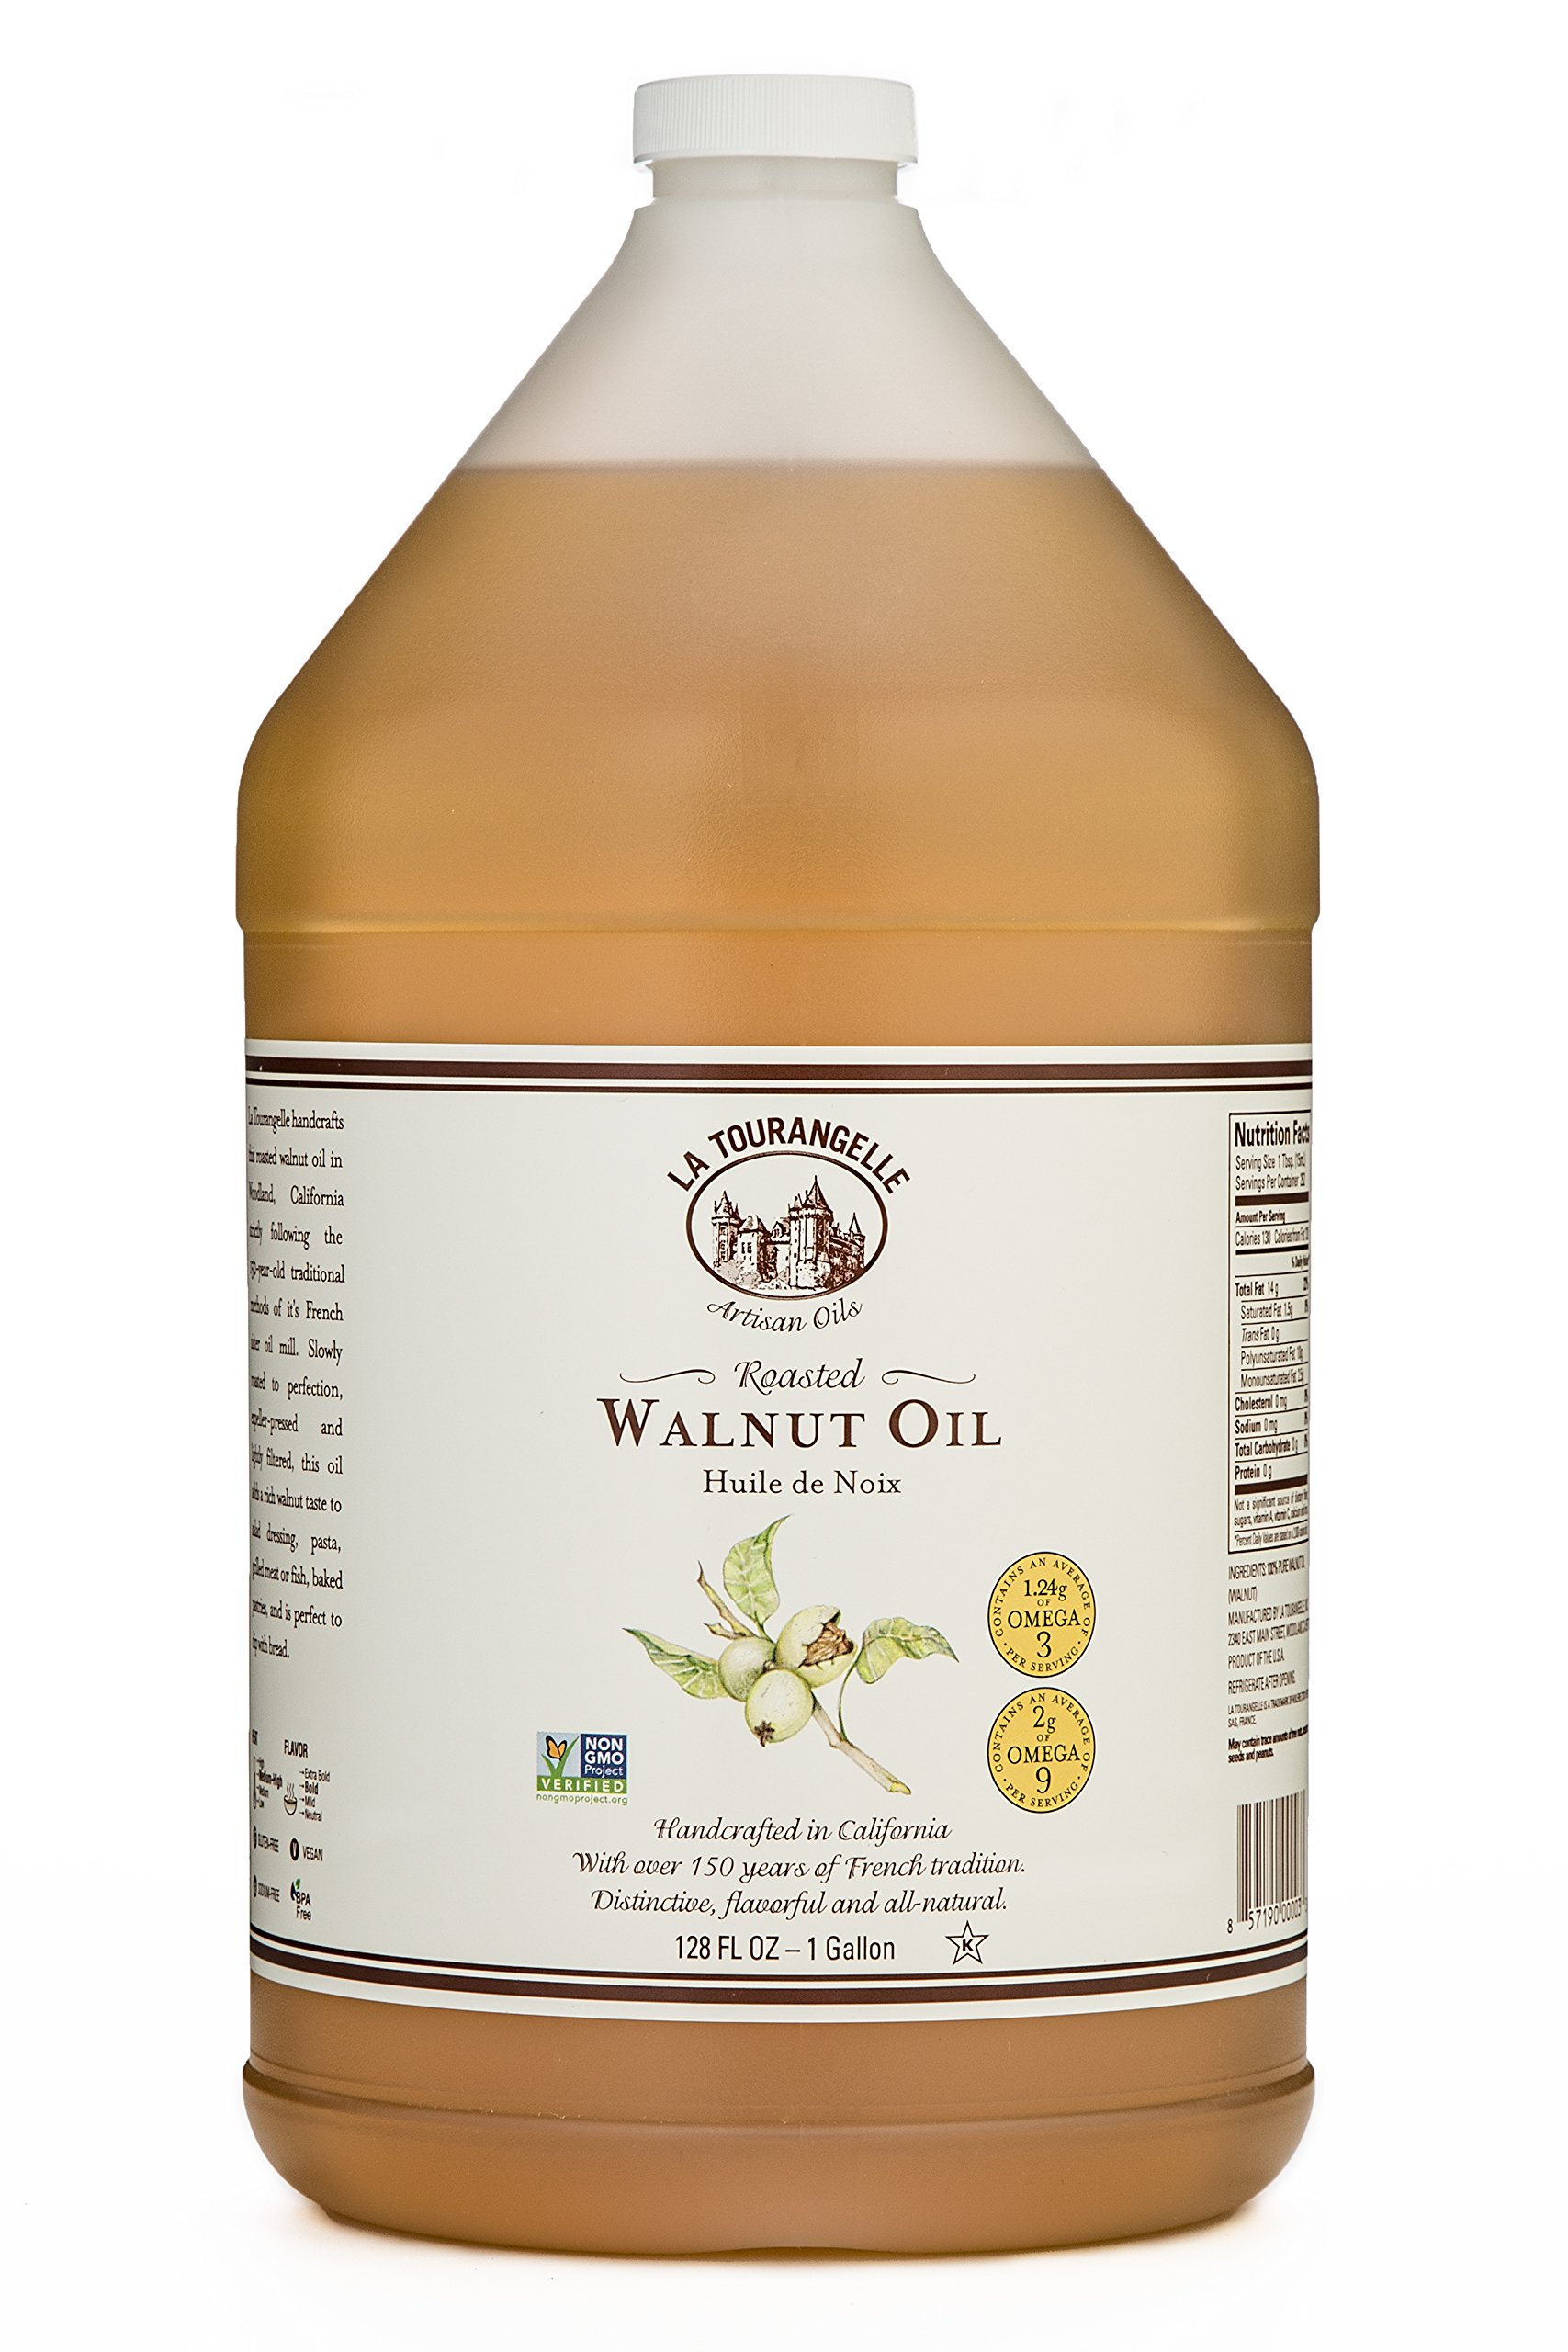 La Tourangelle Roasted Walnut Oil 128 Fl. Oz., All-Natural, Artisanal, Great for Salads, Marinades, Grilled Fish and Meat, or Pasta